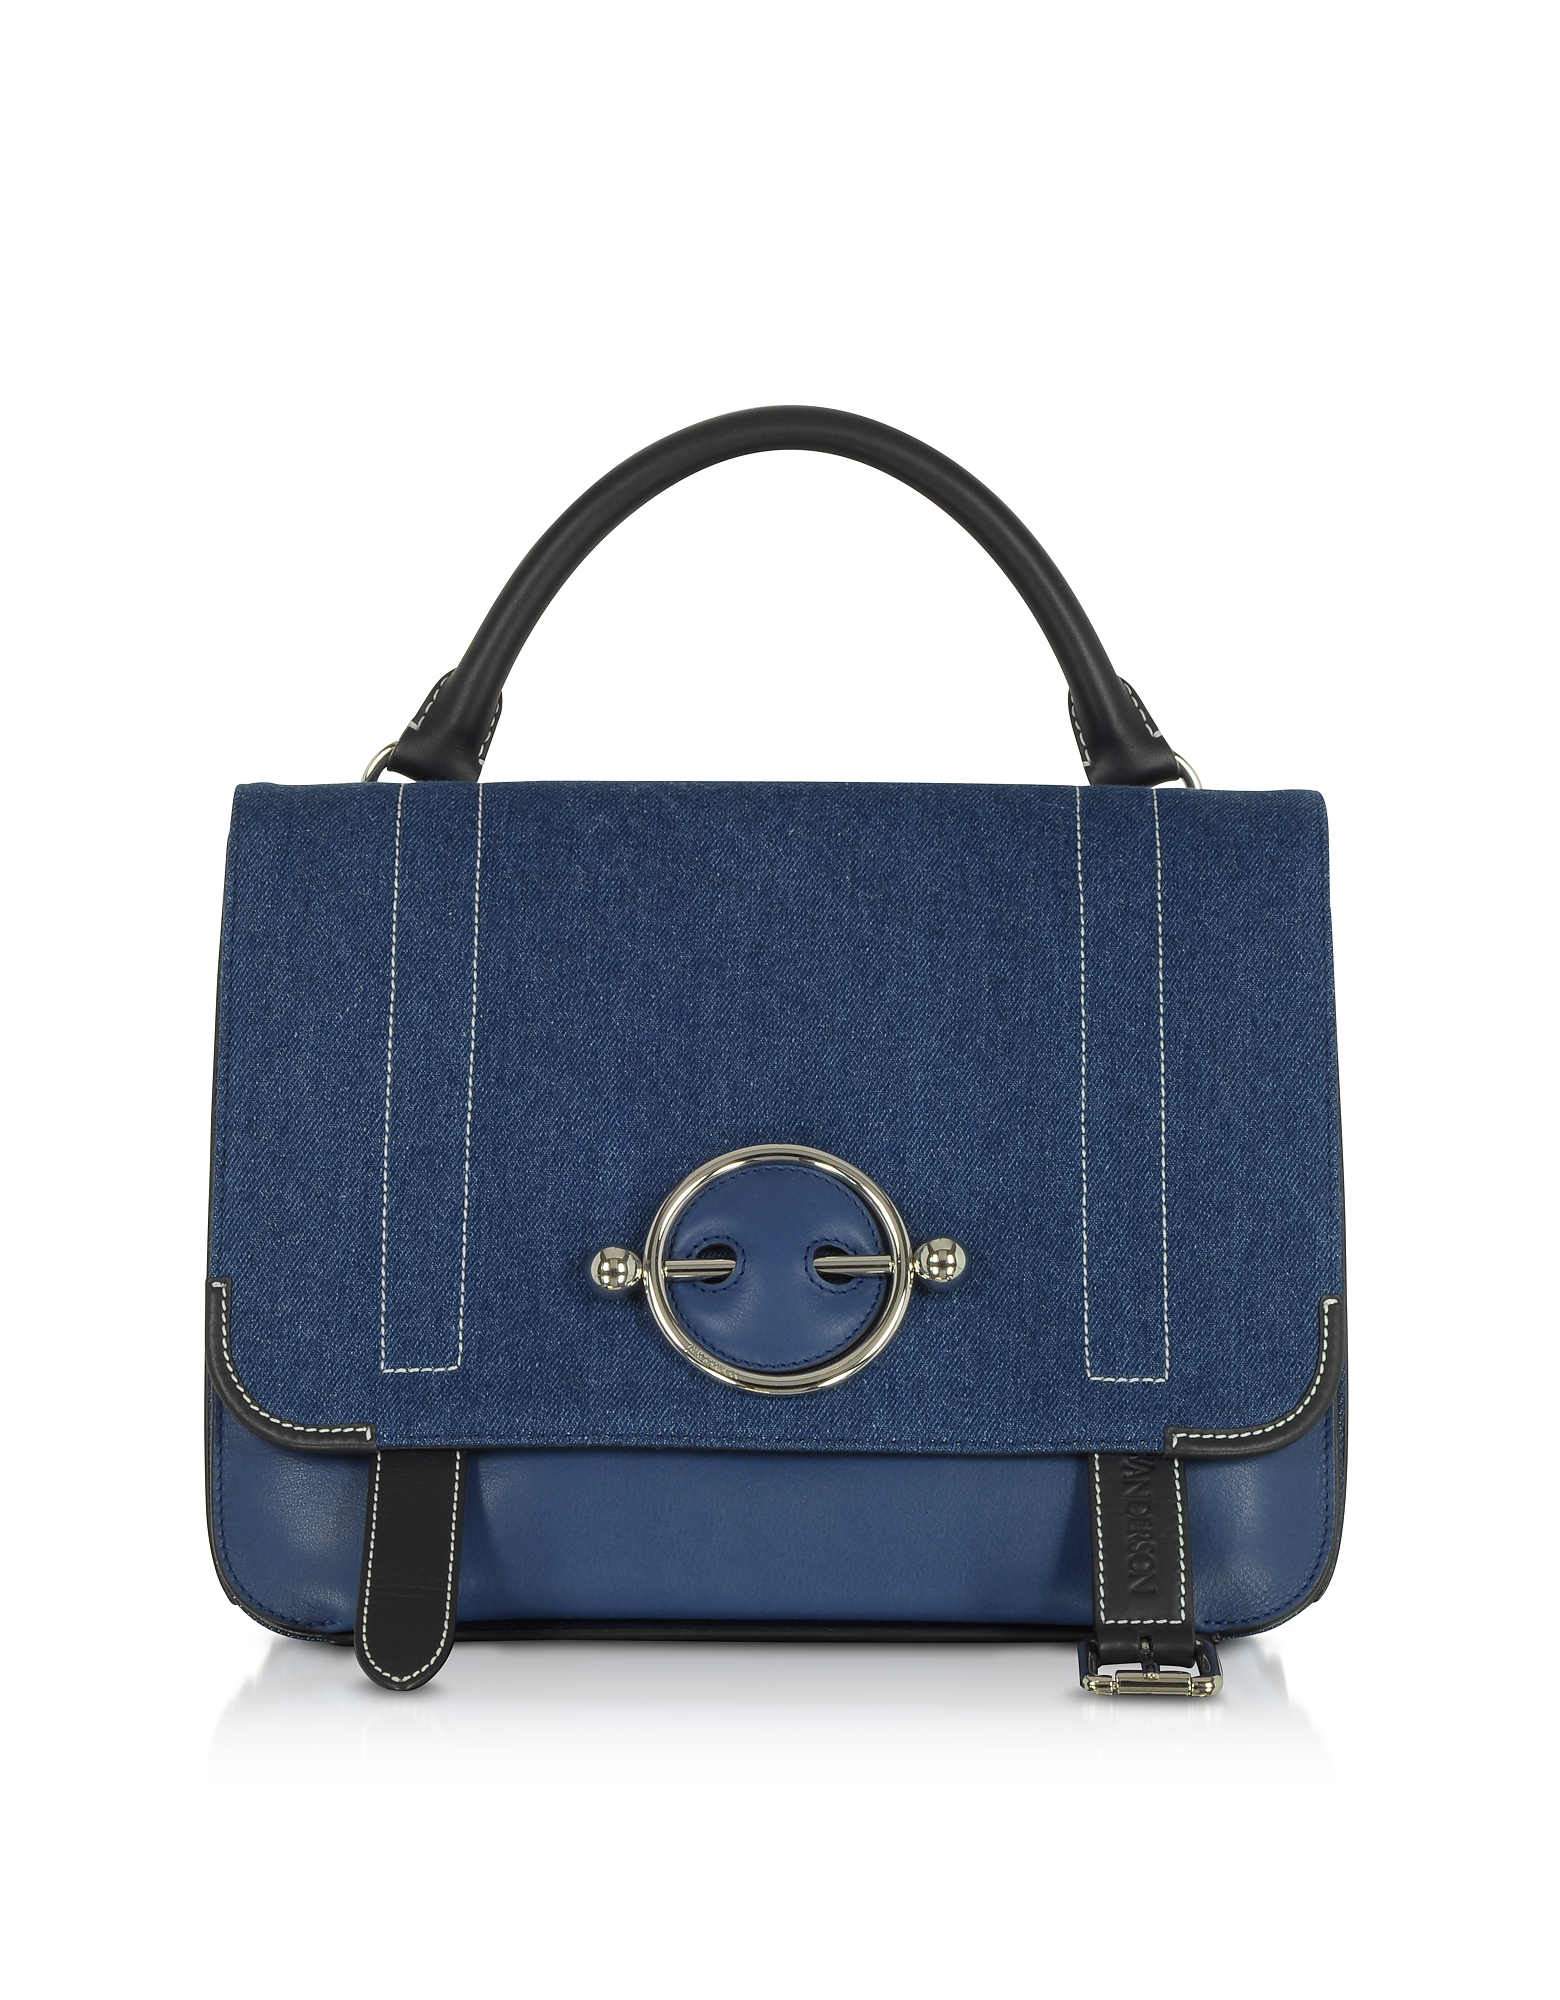 Image of JW Anderson Designer Handbags, Blue Navy Canvas Disc Satchel Bag